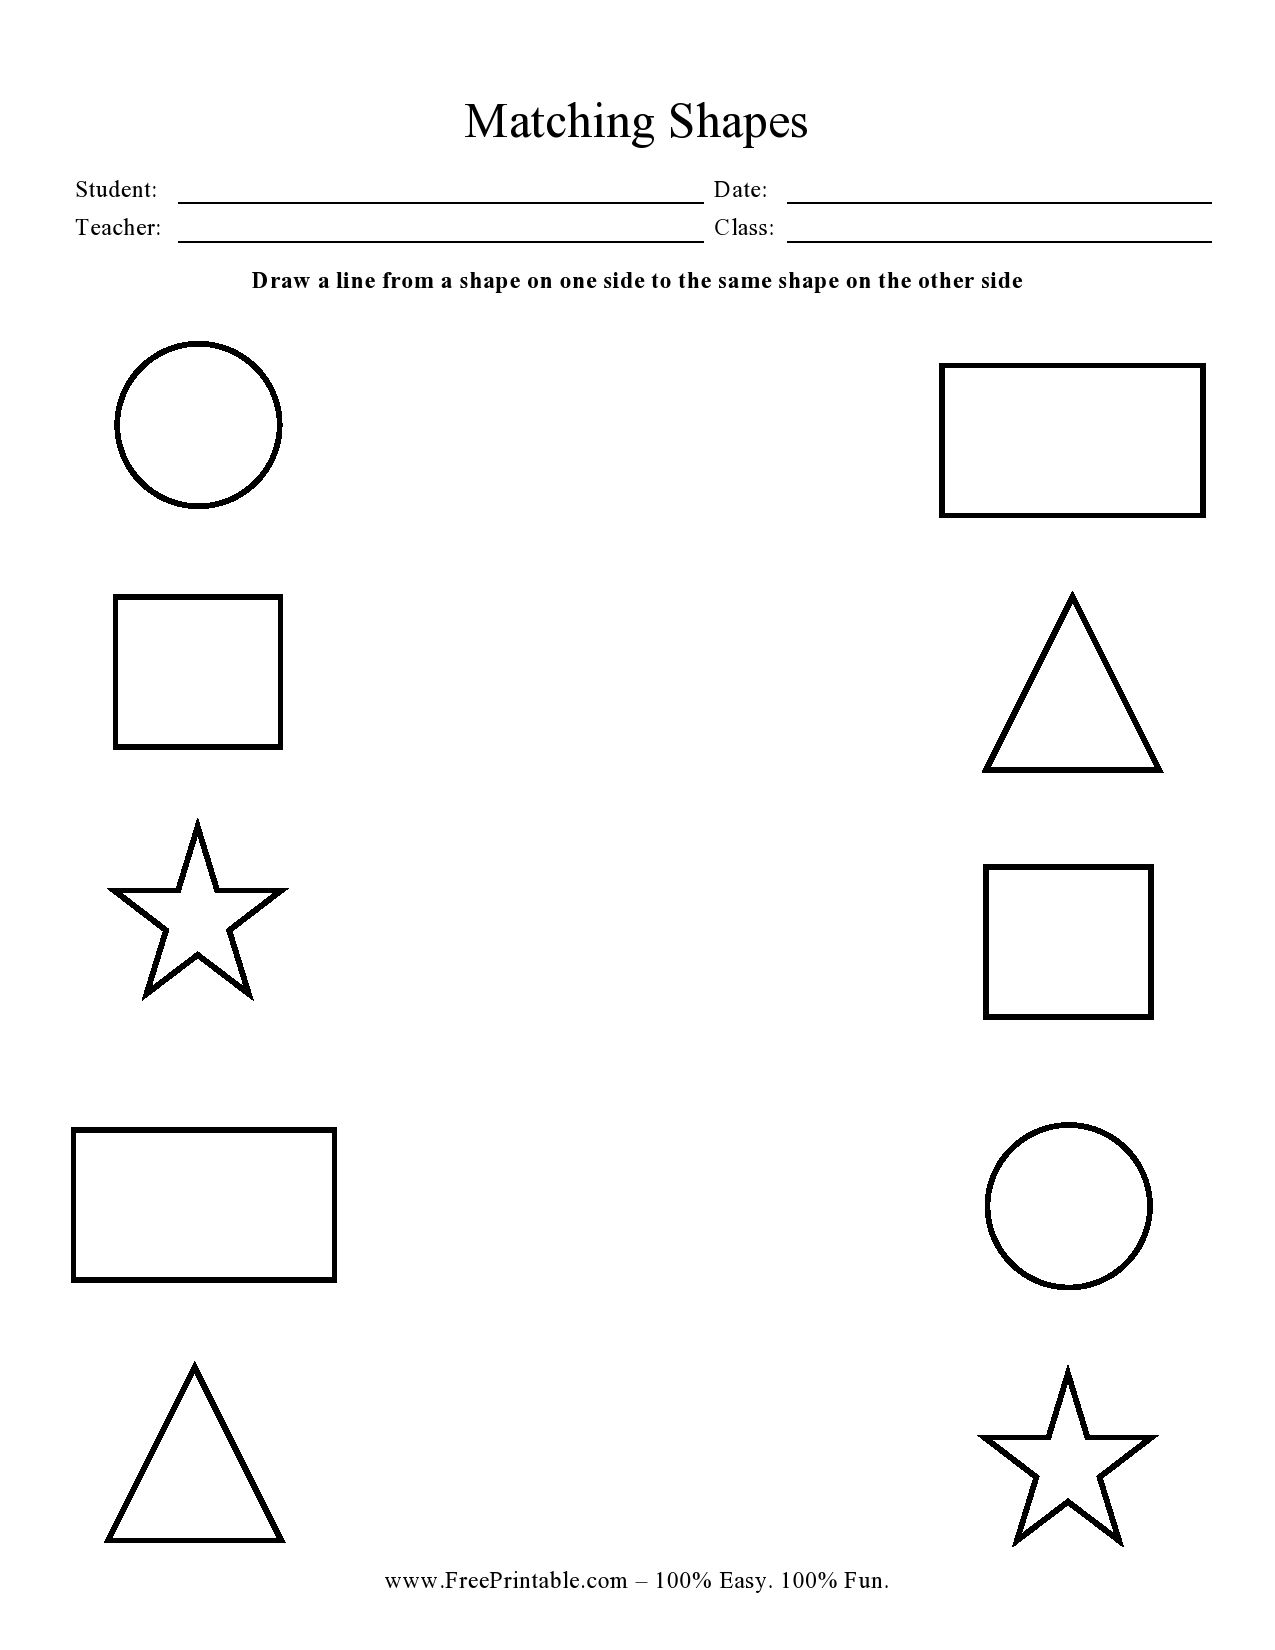 Customize Your Free Printable Matching Shapes In